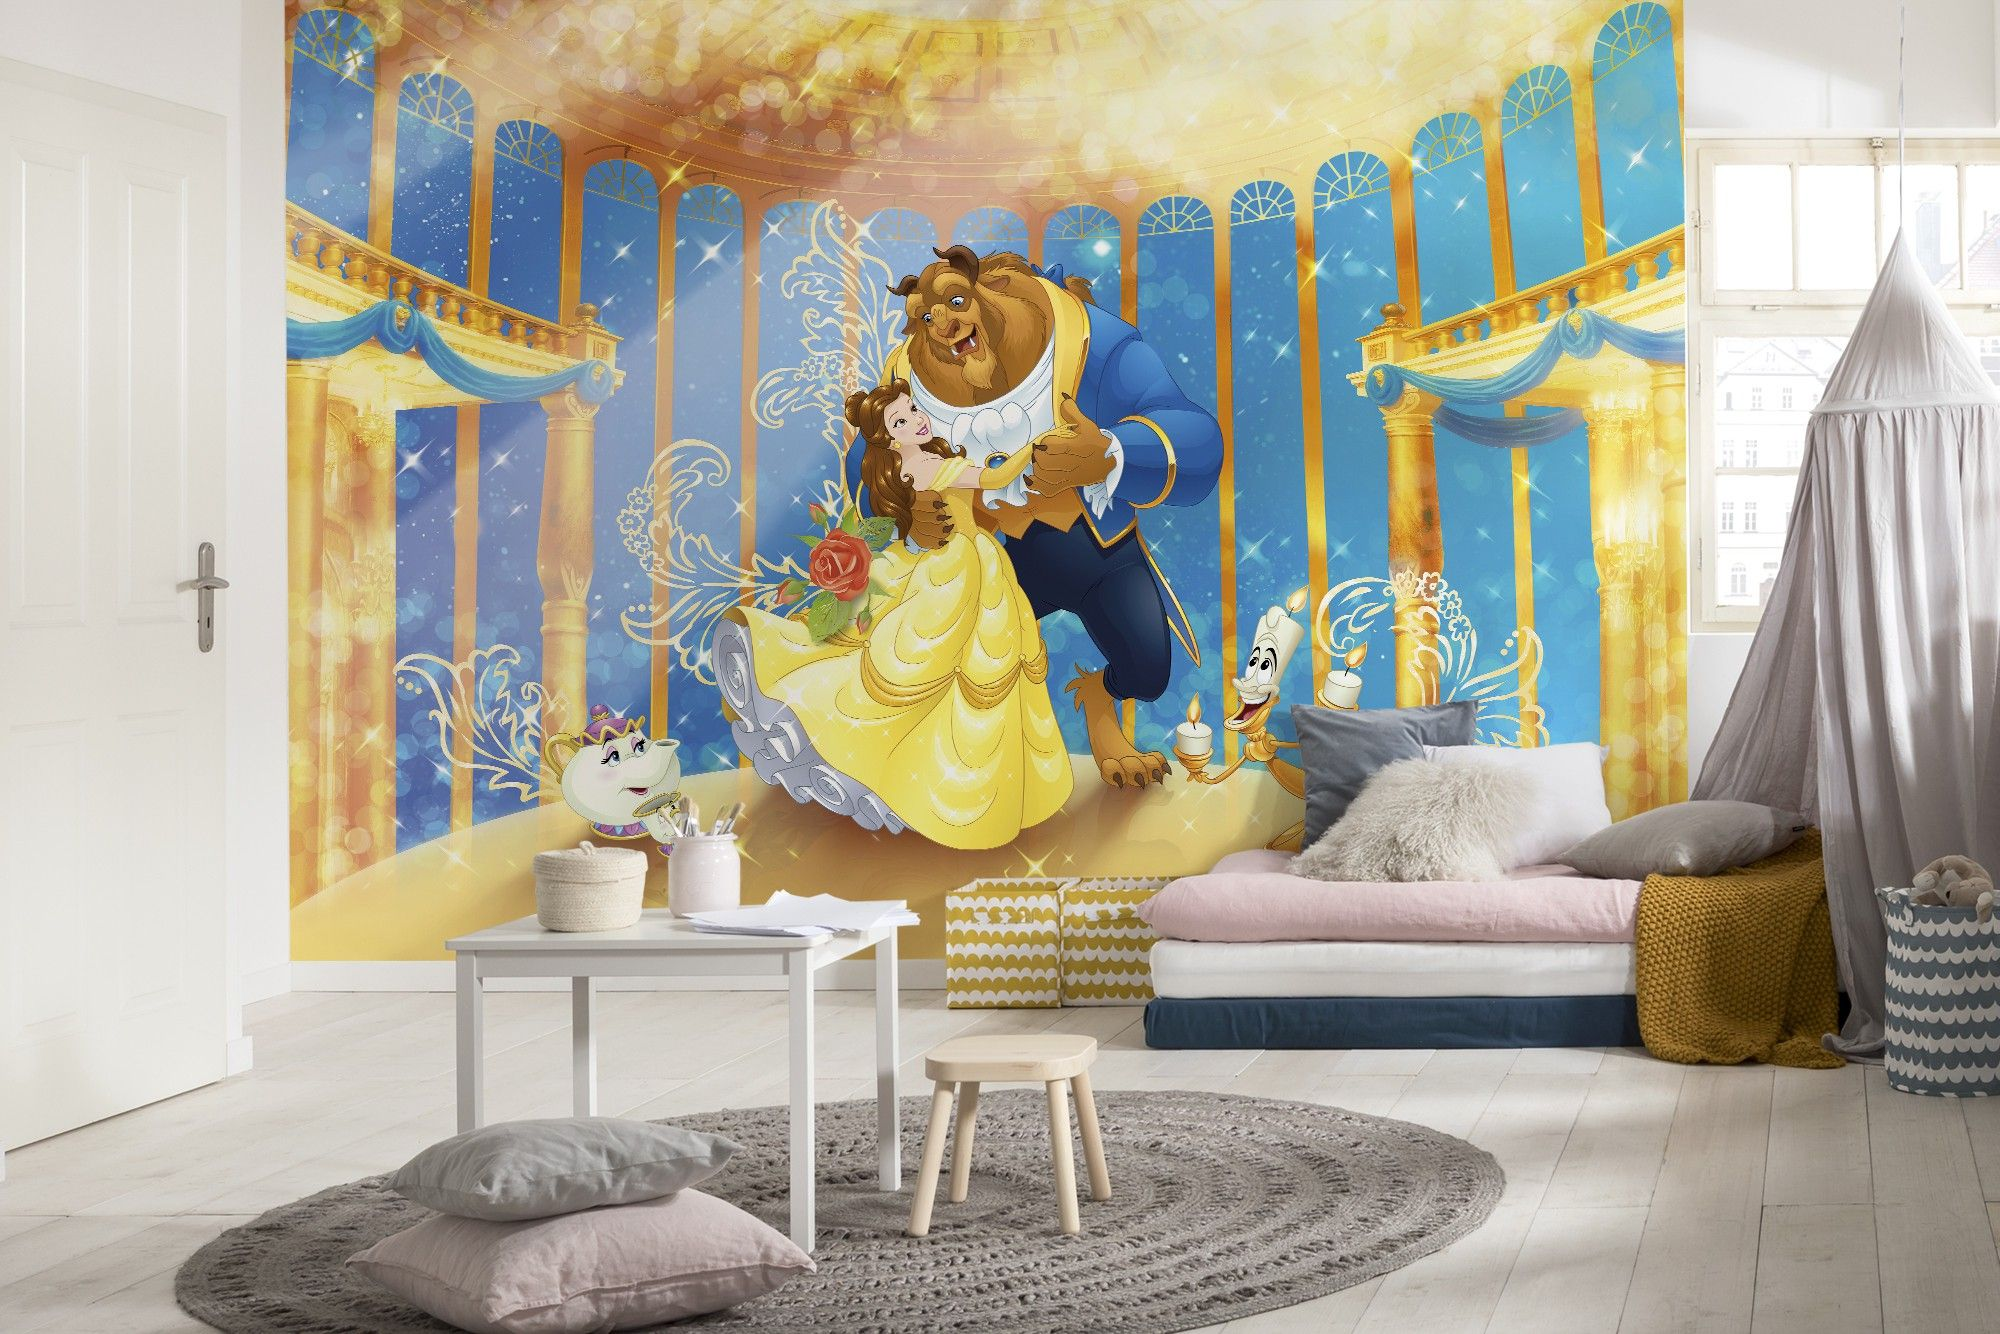 Beauty and the Beast wall mural wallpaper Disney Buy it now